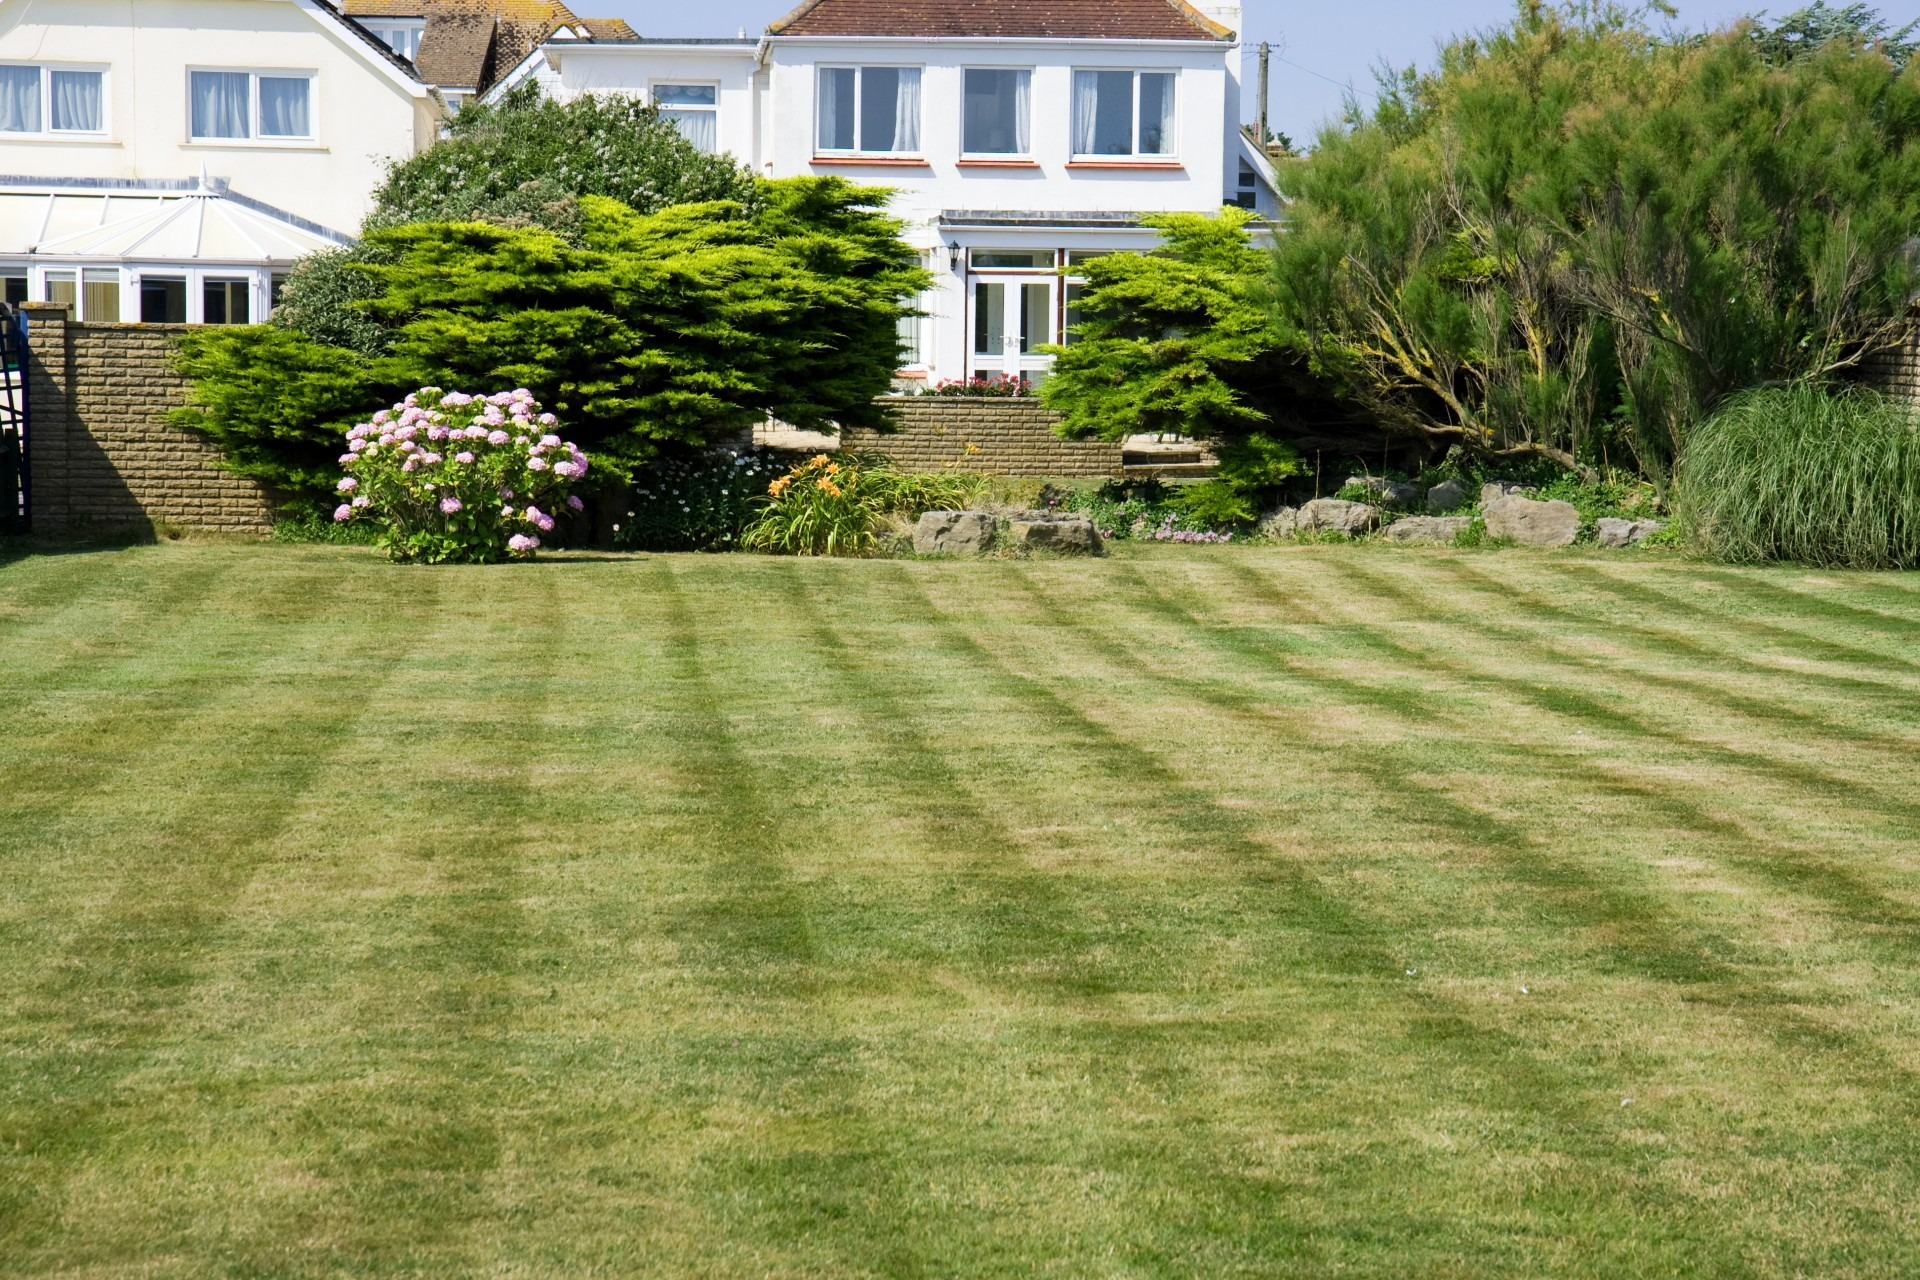 Residential Lawn Care and Landscaping Services Turf Tamers Lawn